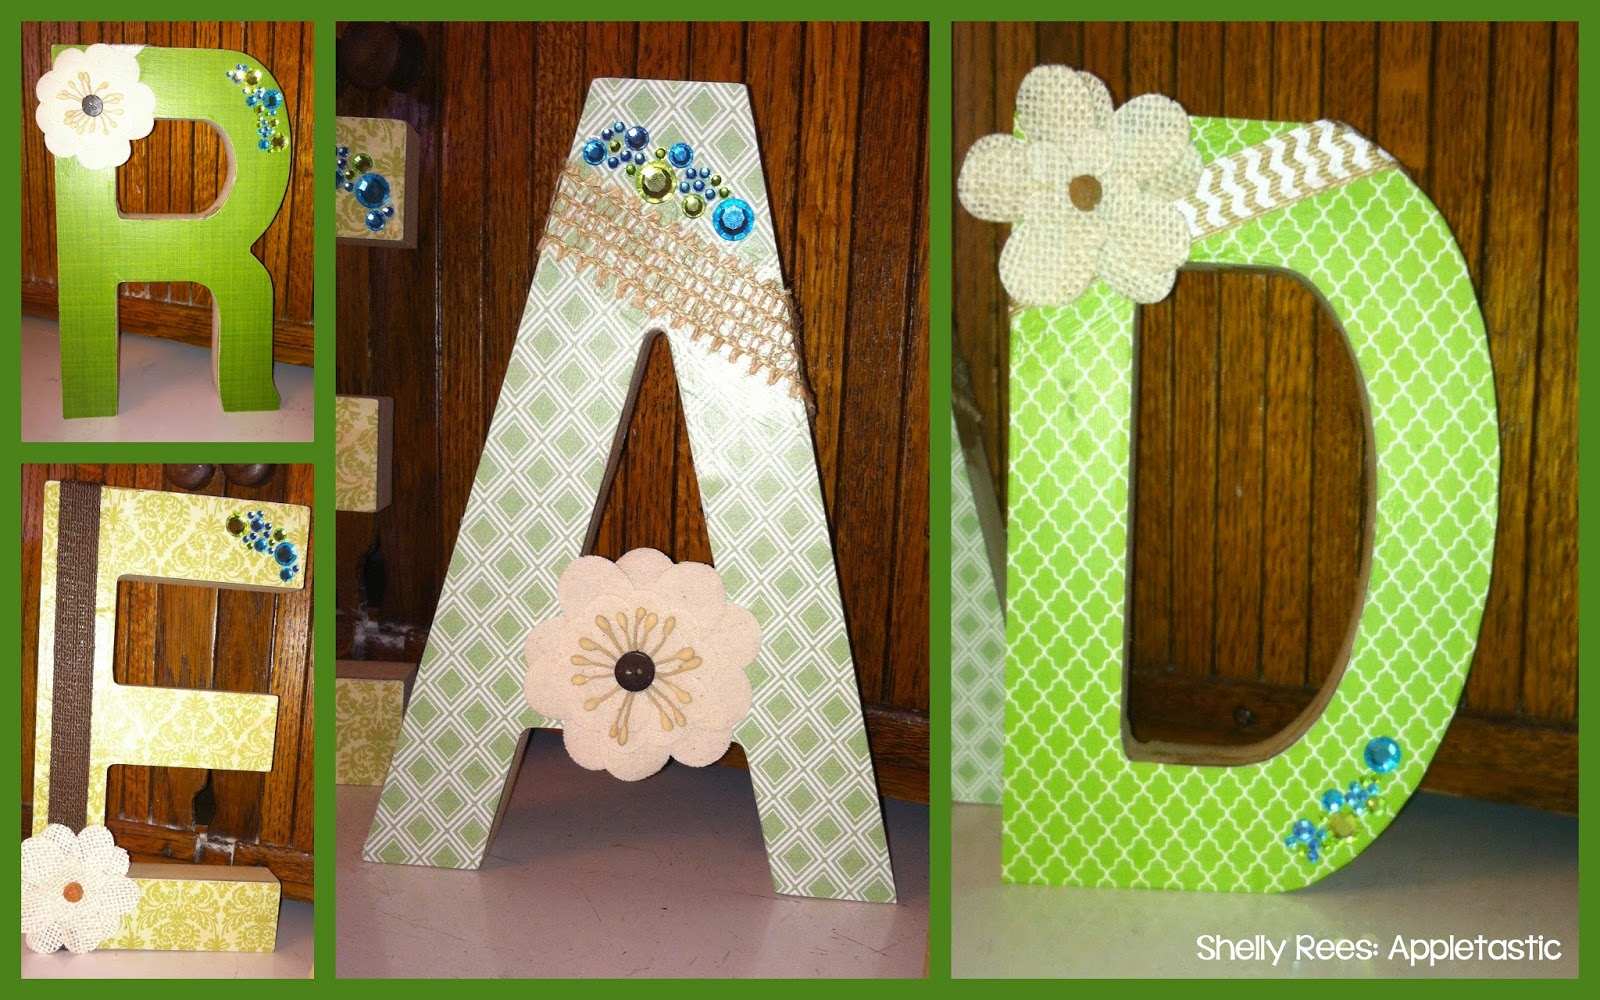 mod podge pictures on wood letters mod podge wooden letters for your classroom diy 23676 | 2015 05 256